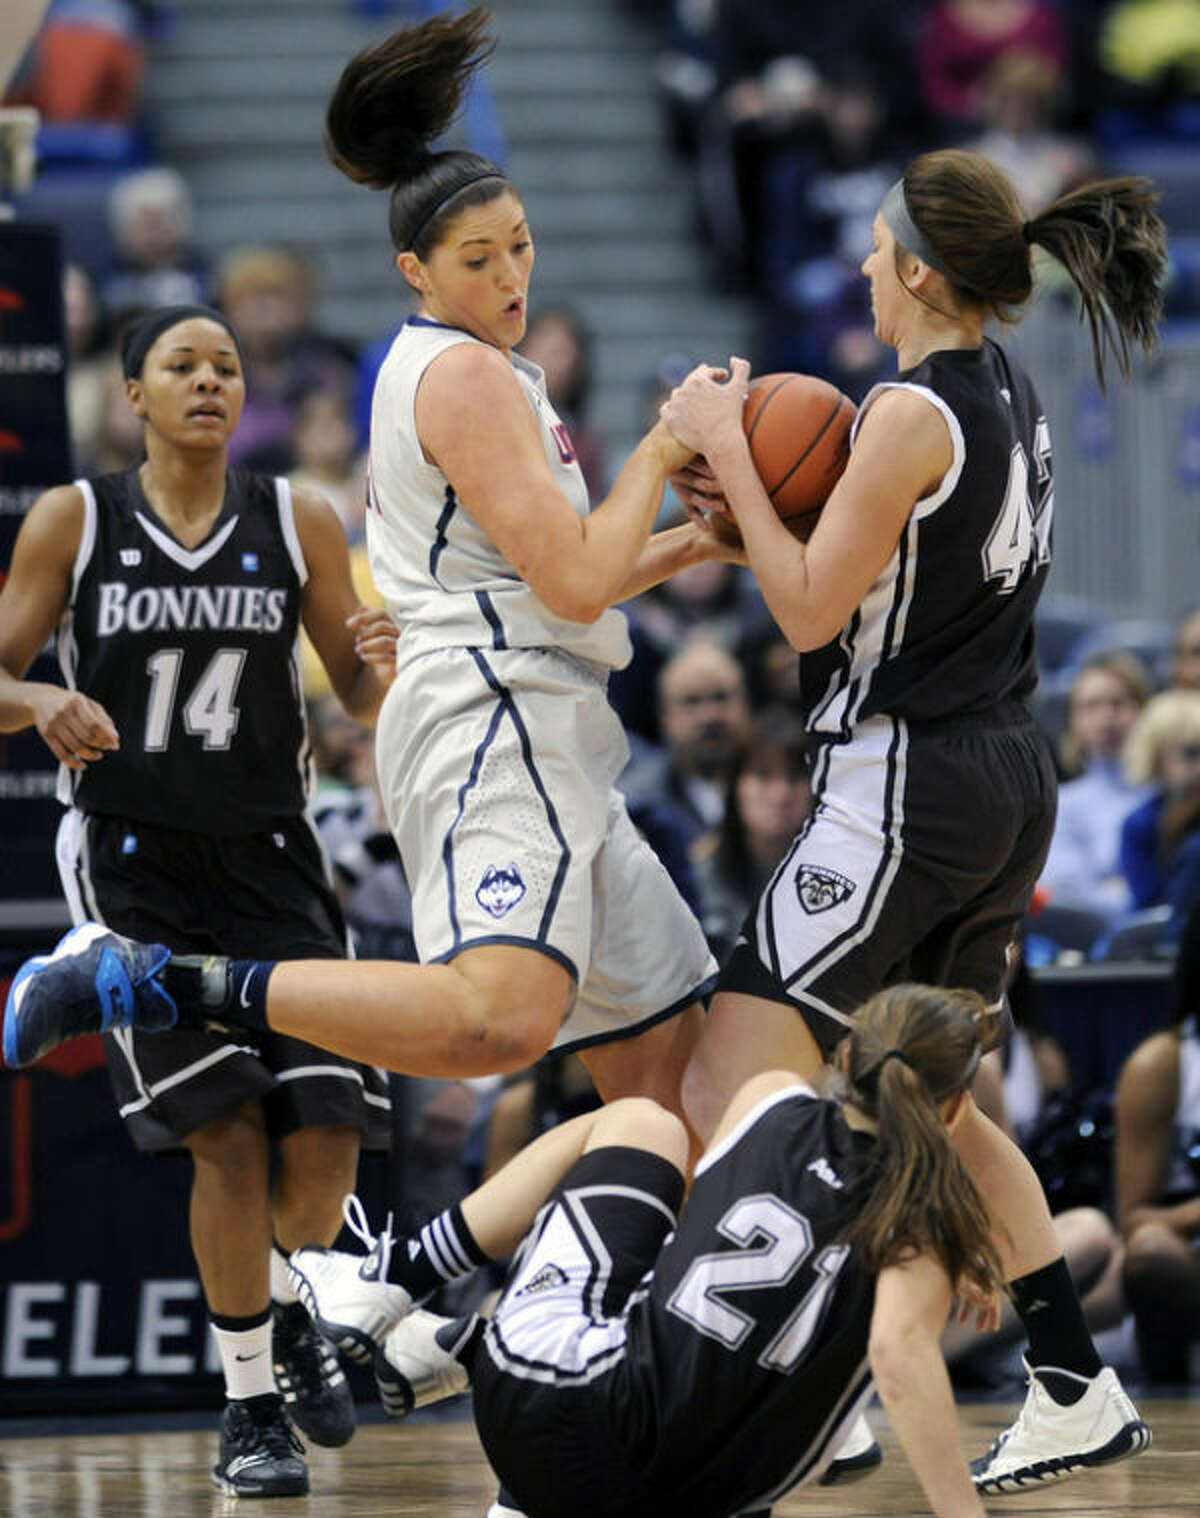 Connecticut's Stefanie Dolson, second from left, fights for a rebound with St. Bonaventure's Katie Healy, right, as St. Bonaventure's Nyla Rueter (21) and Gabby Richmond (14) stand by during the first half of an NCAA college basketball game in Hartford, Conn., on Sunday, Nov. 24, 2013. (AP Photo/Fred Beckham)